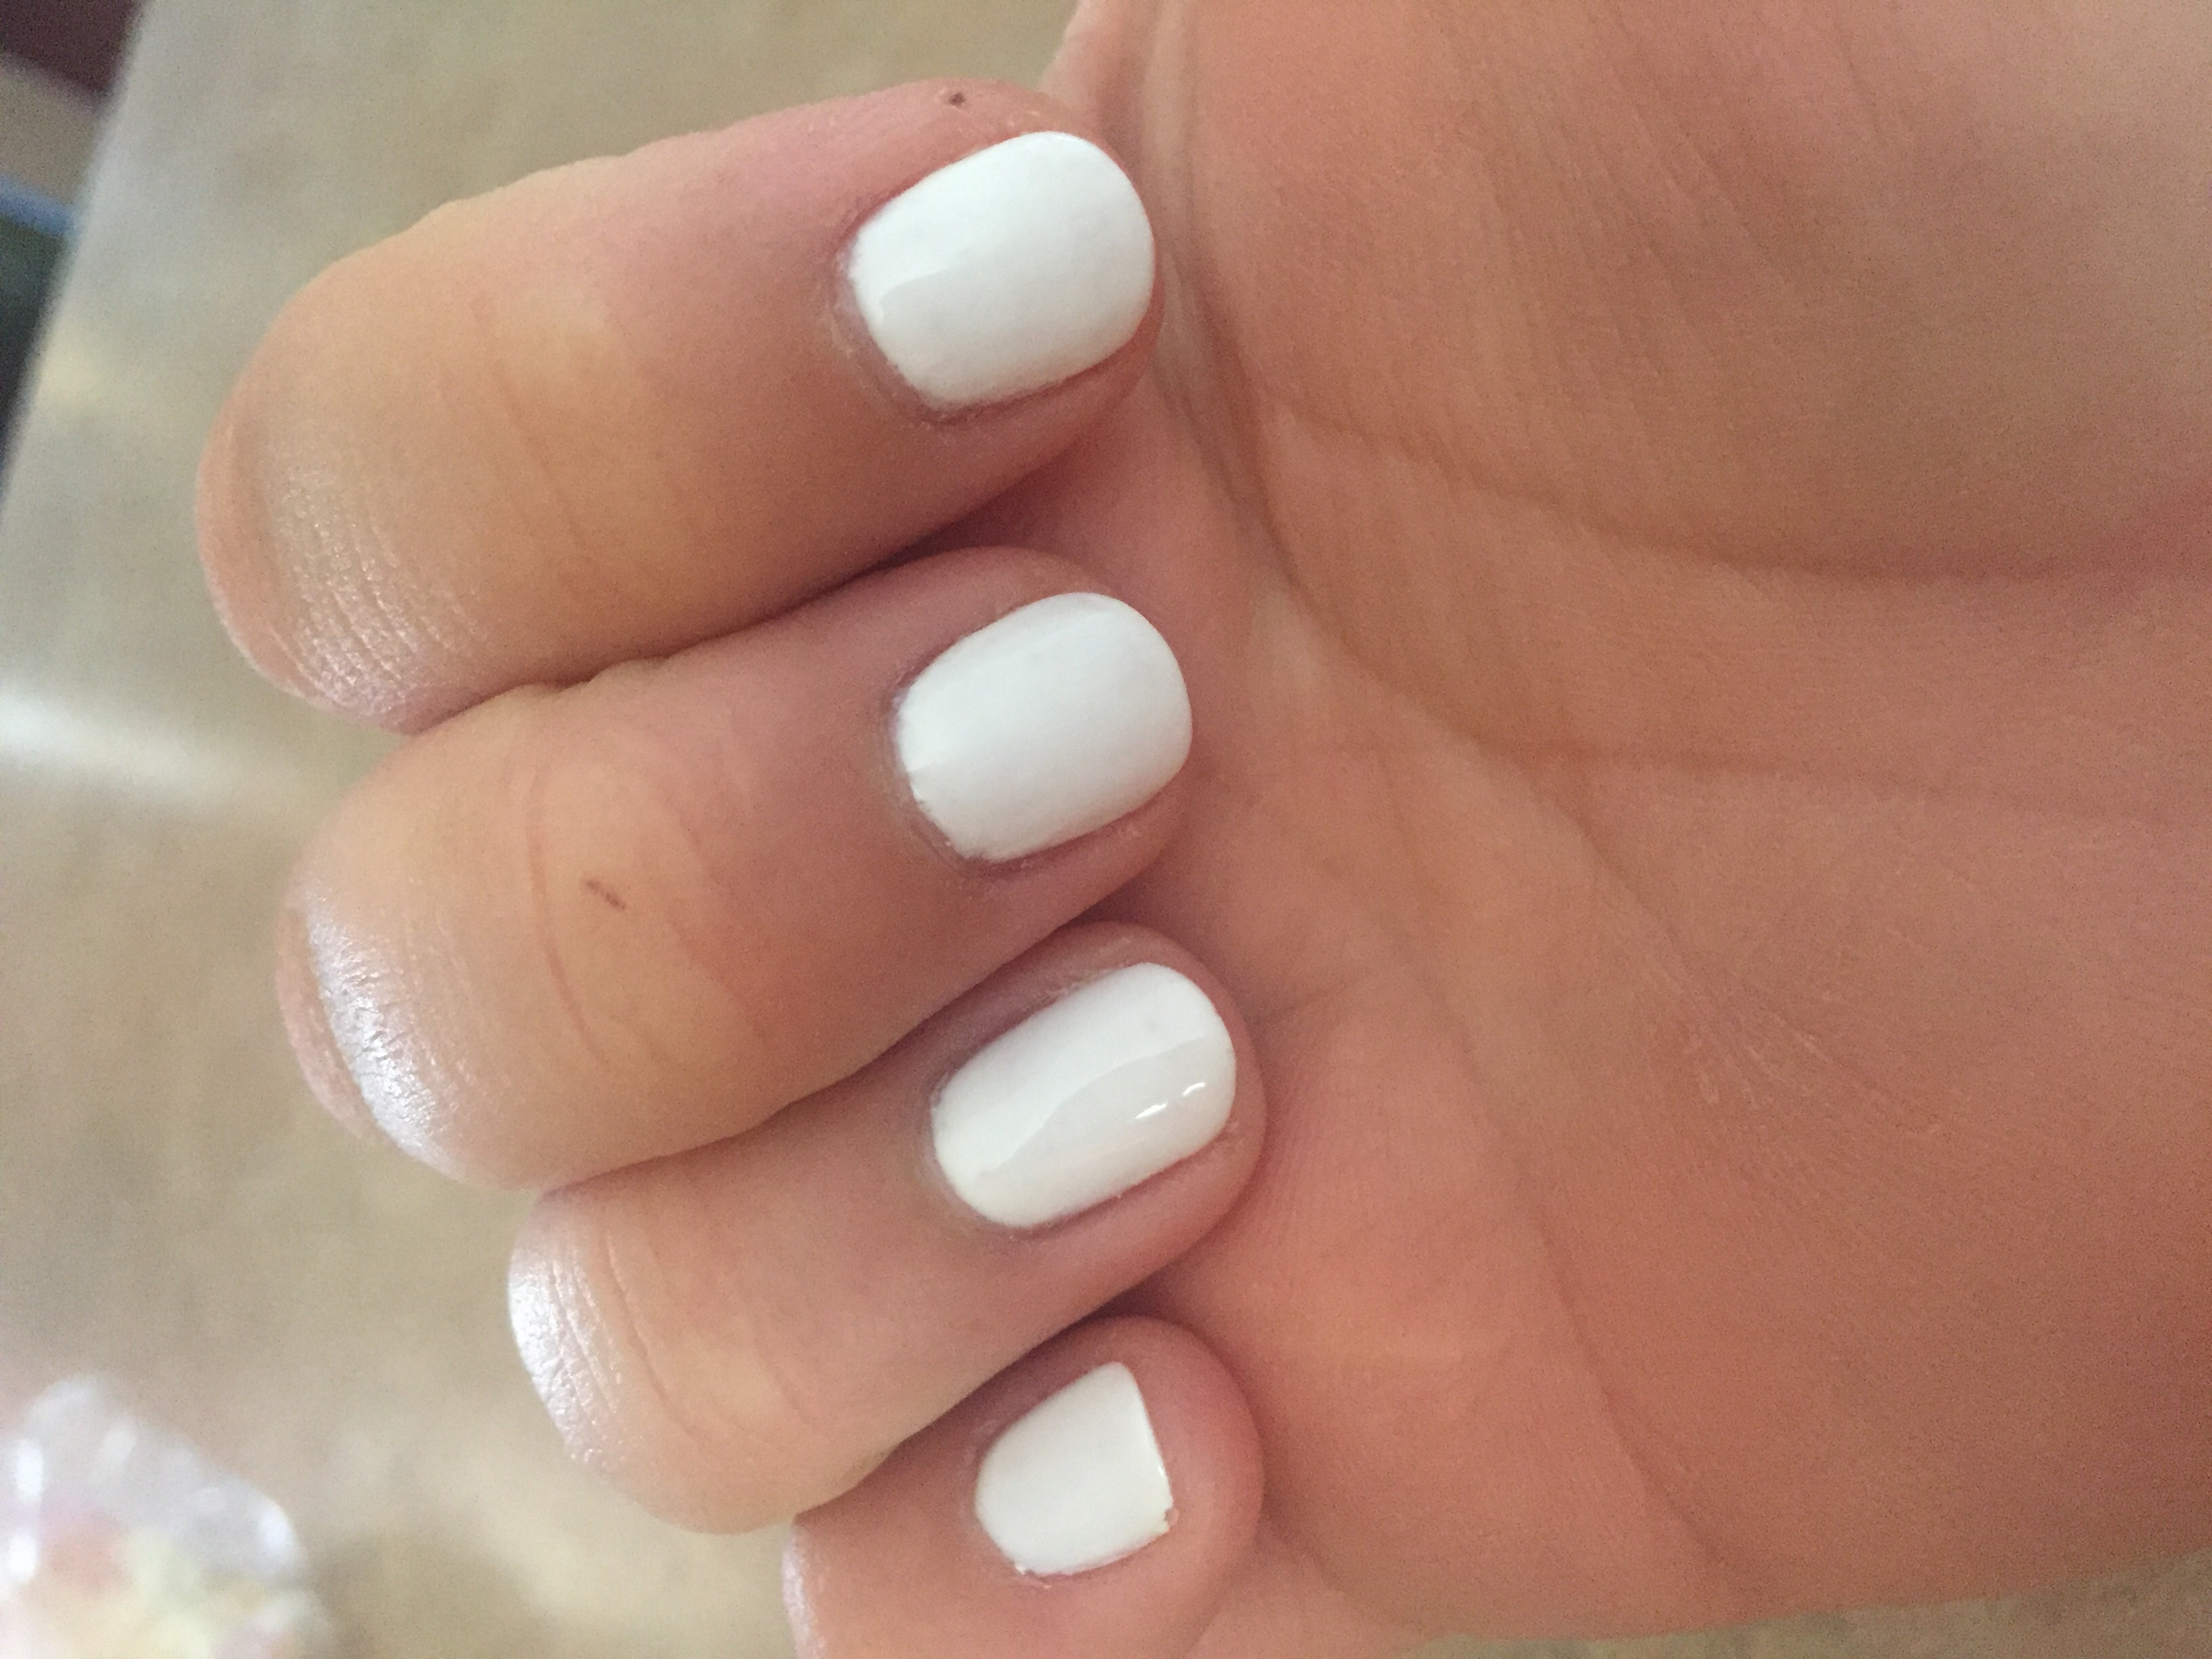 Fashion Nail Salon and Spa 359 Upland Sq Dr, Pottstown, PA 19464 ...